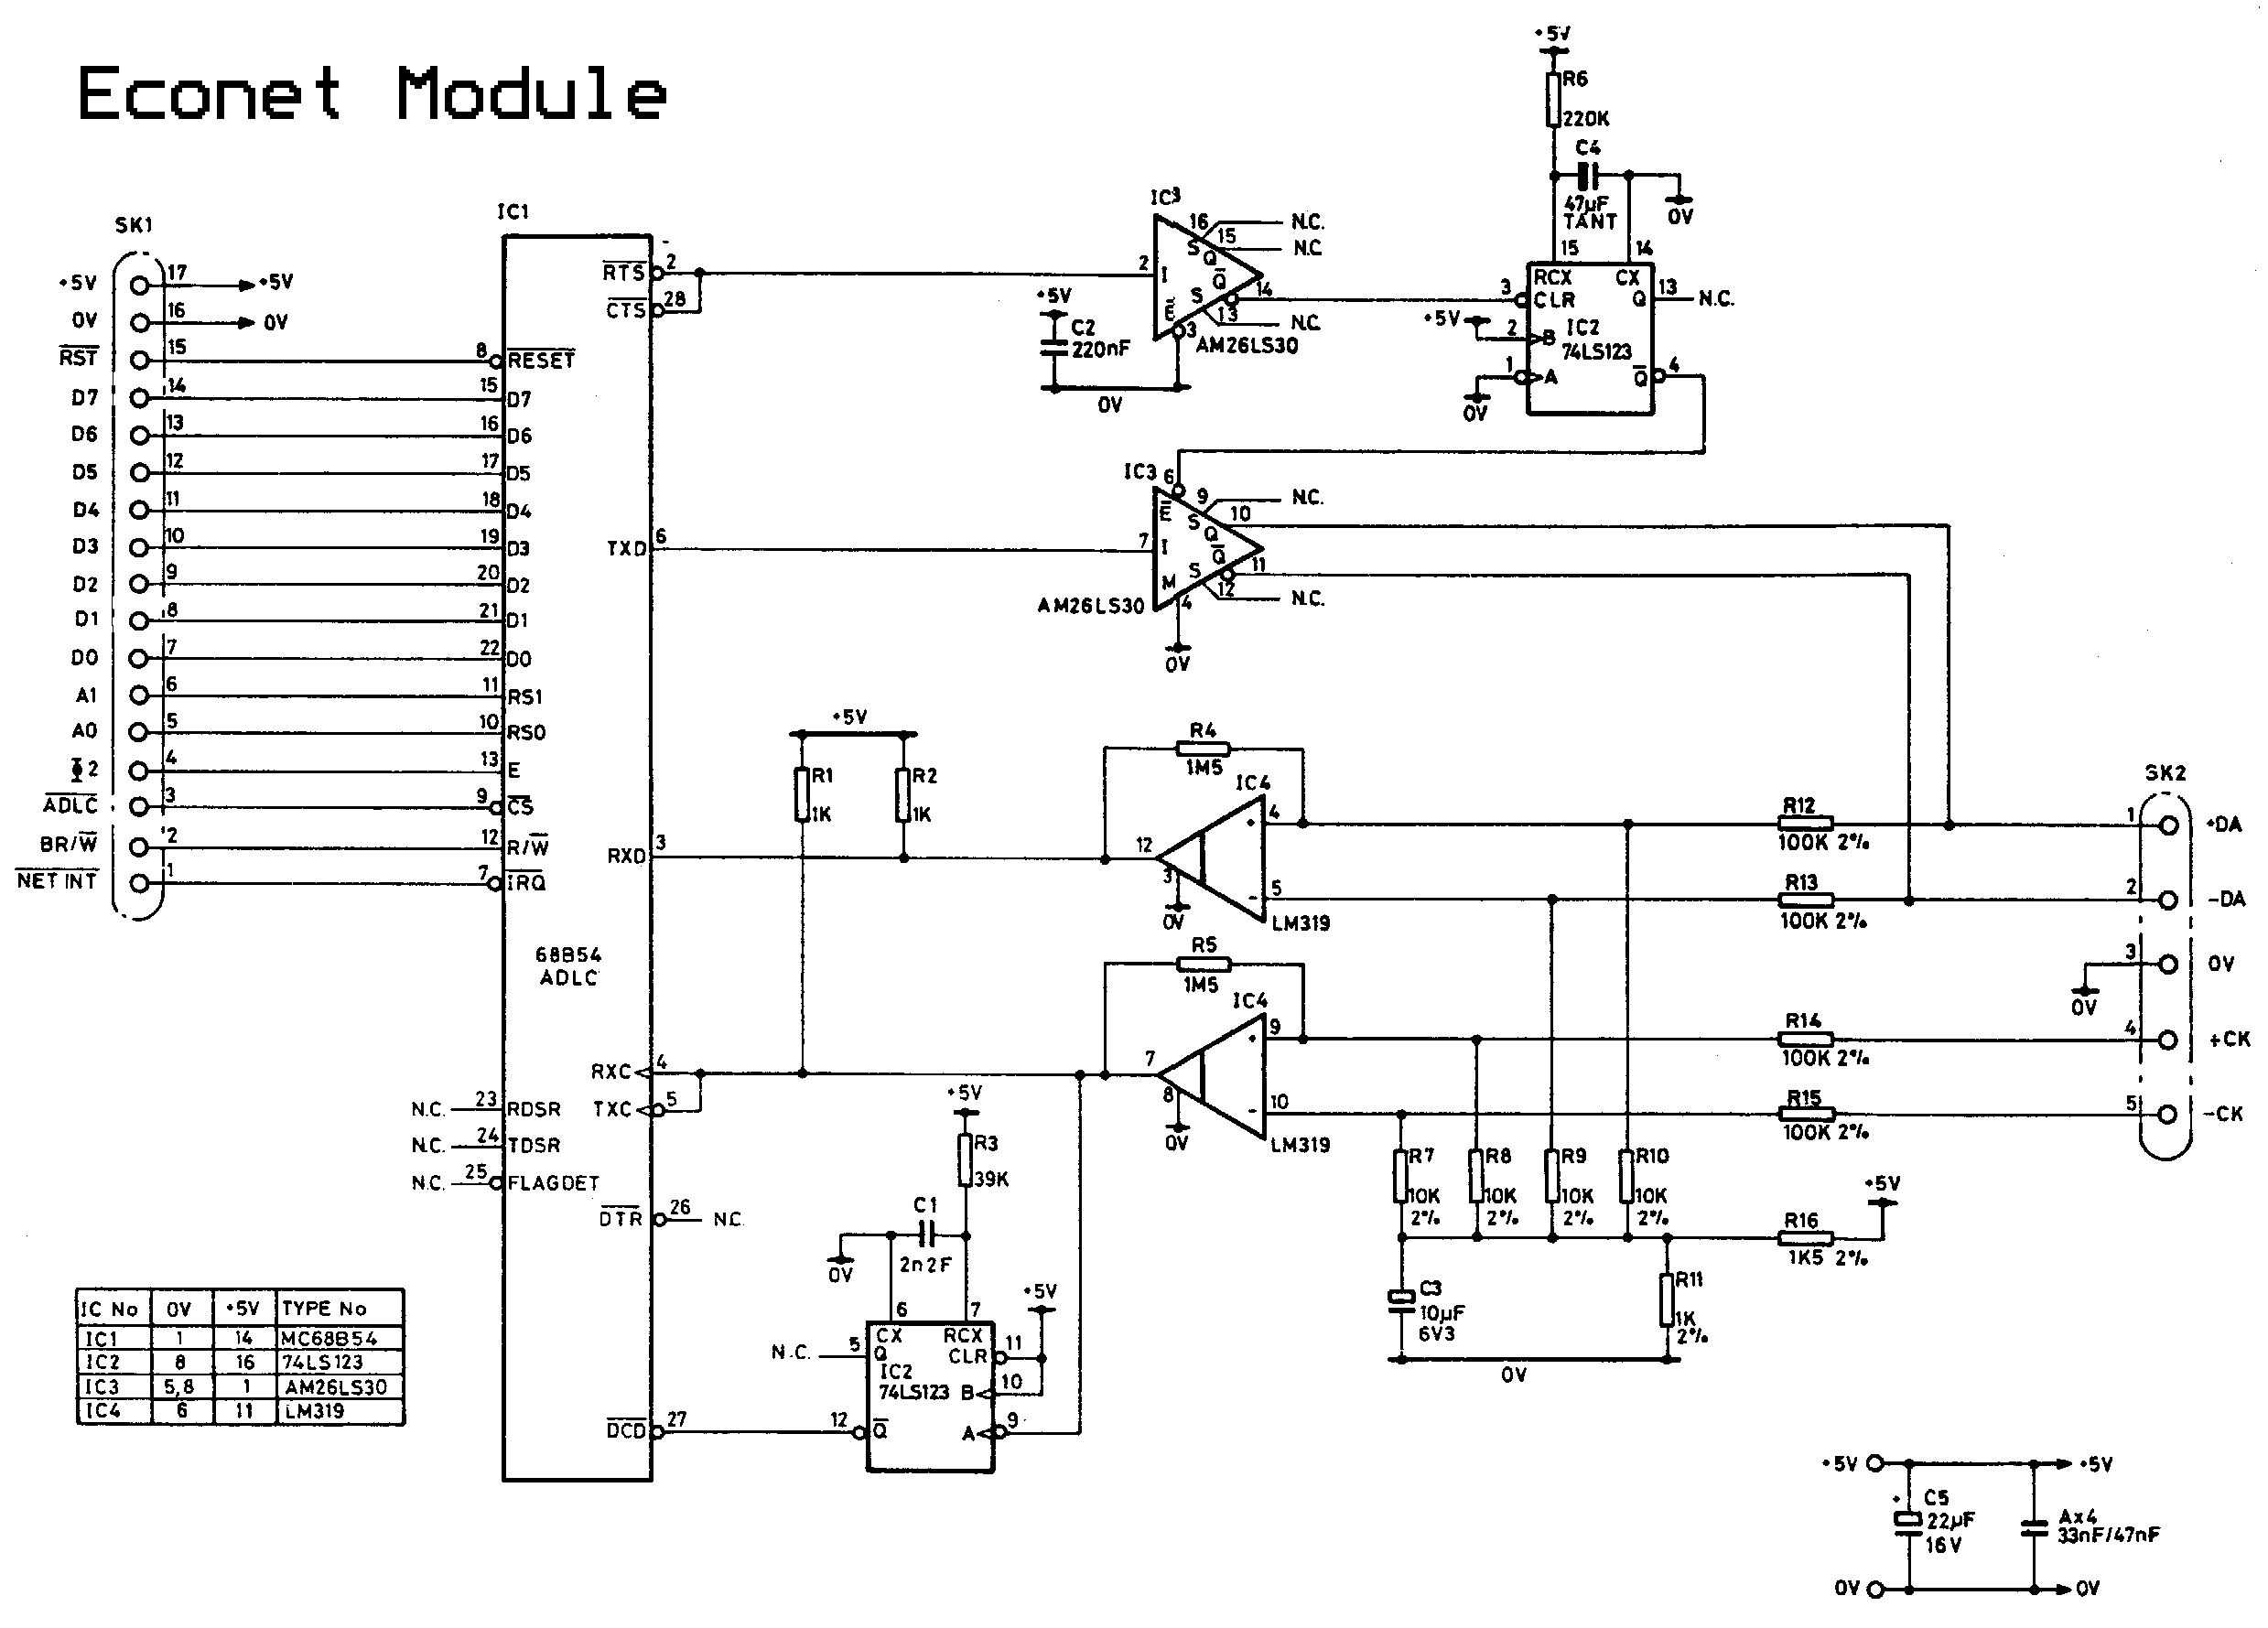 BBC Econet circuit diagrams wiring diagram for ecobee at readyjetset.co